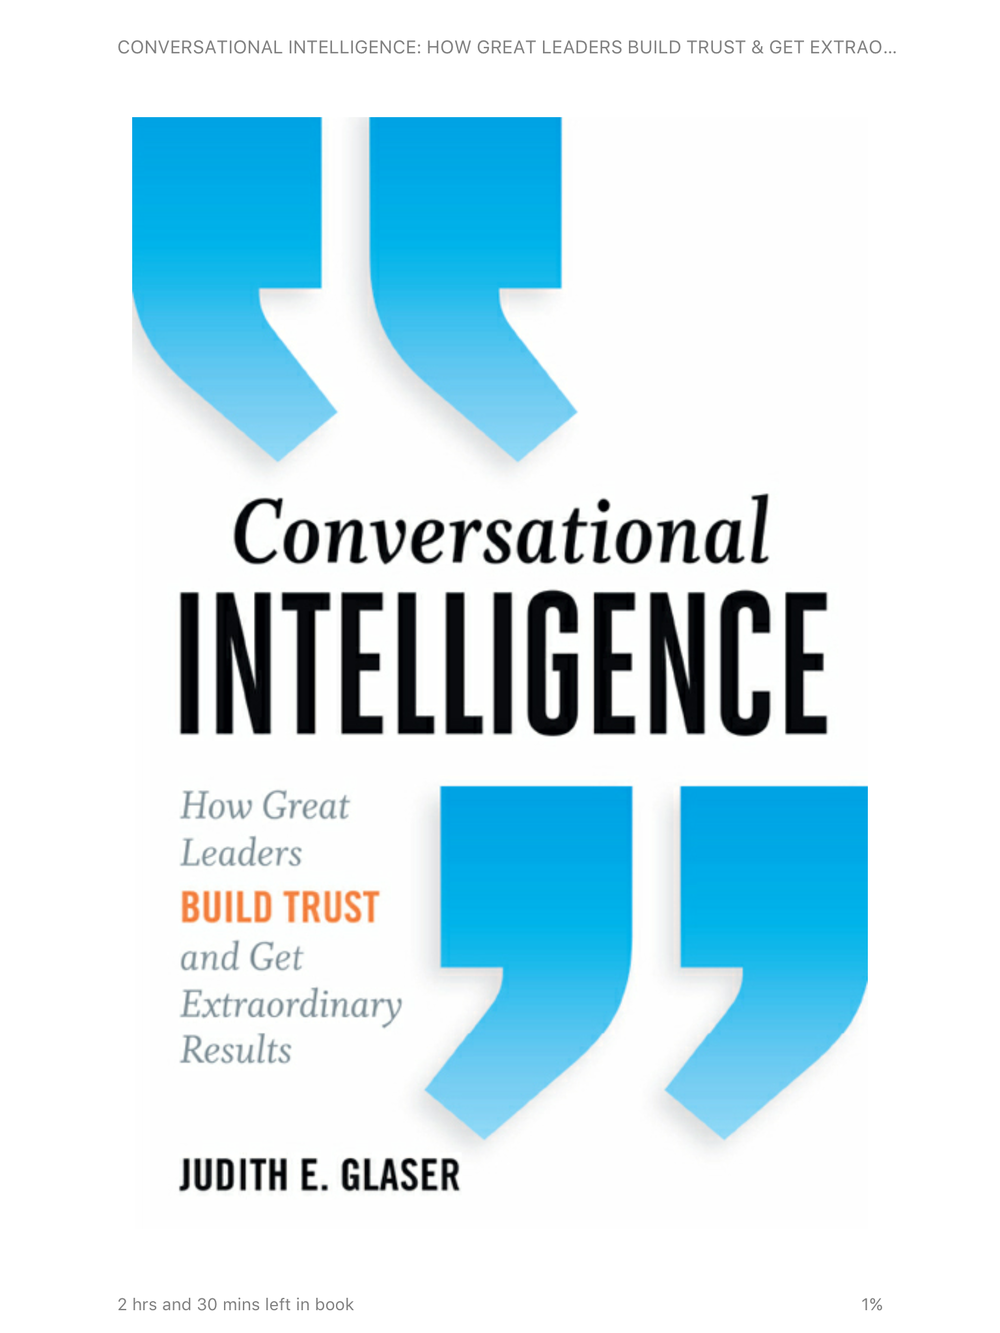 I mentioned this book and included a slide in the powerpoint. If you want to take your conversations to the next level ... this is informative reading.